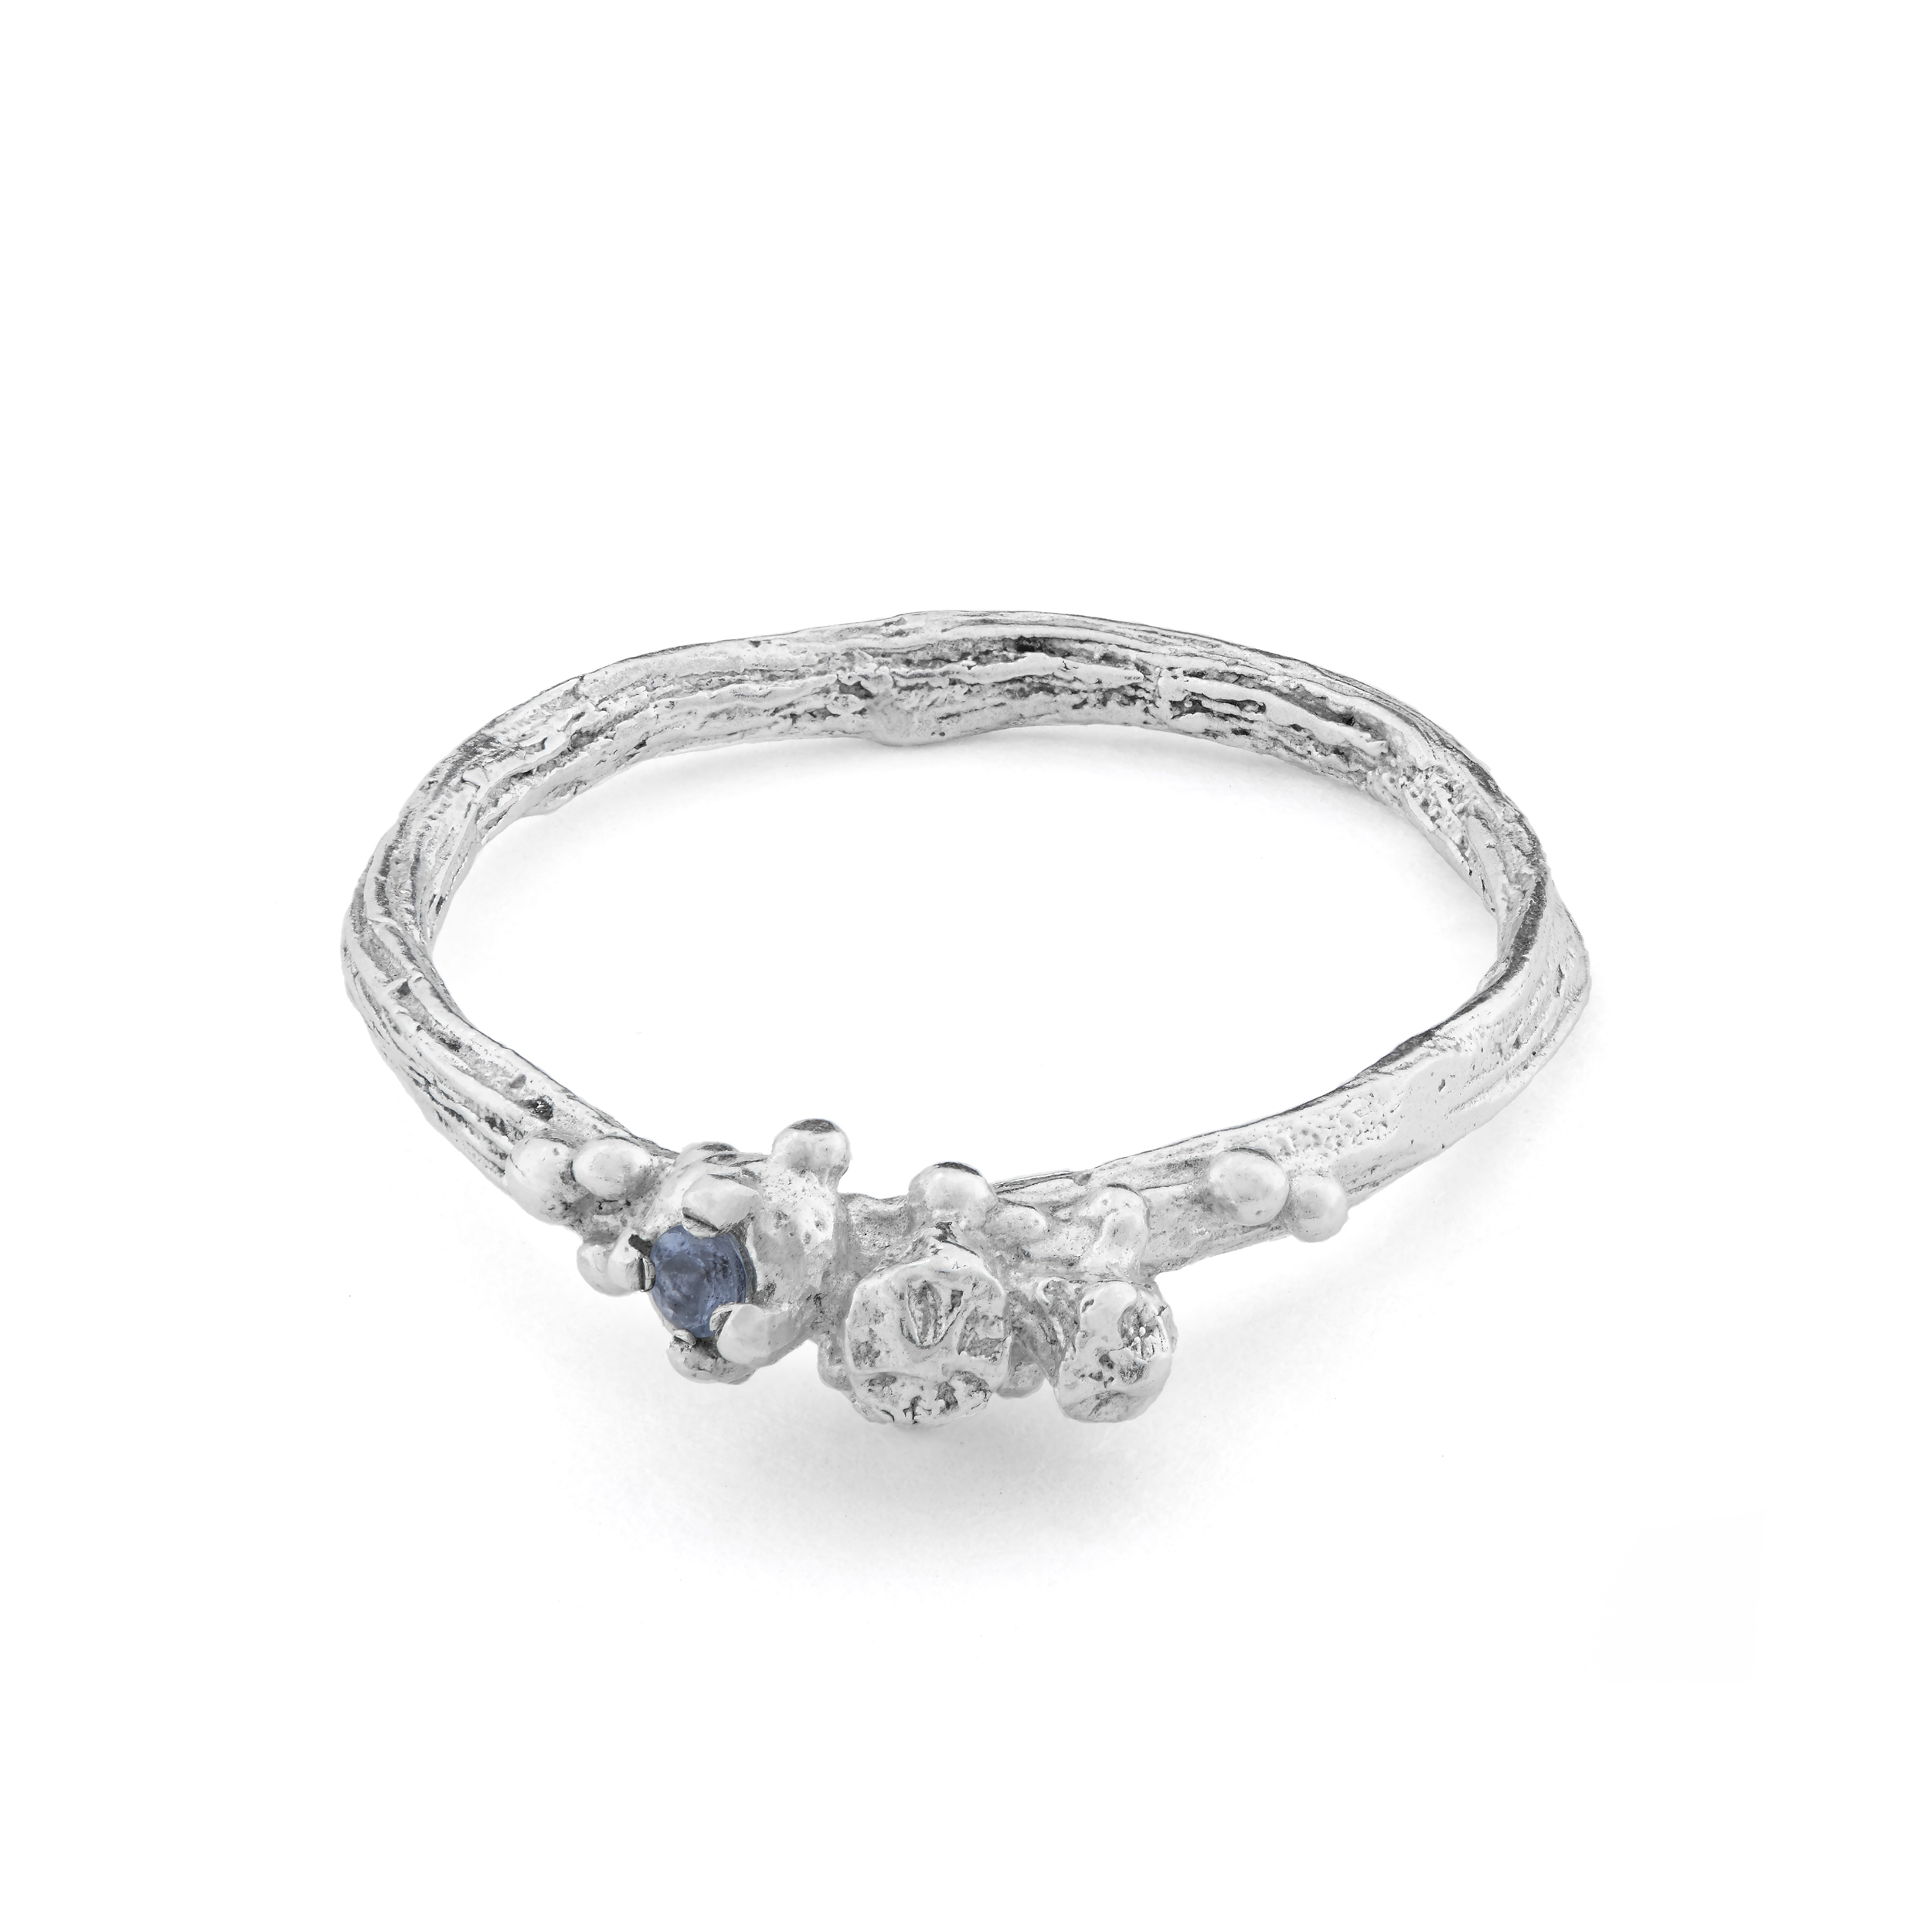 Eily O Connell berries ring silver with aquamarine.jpg